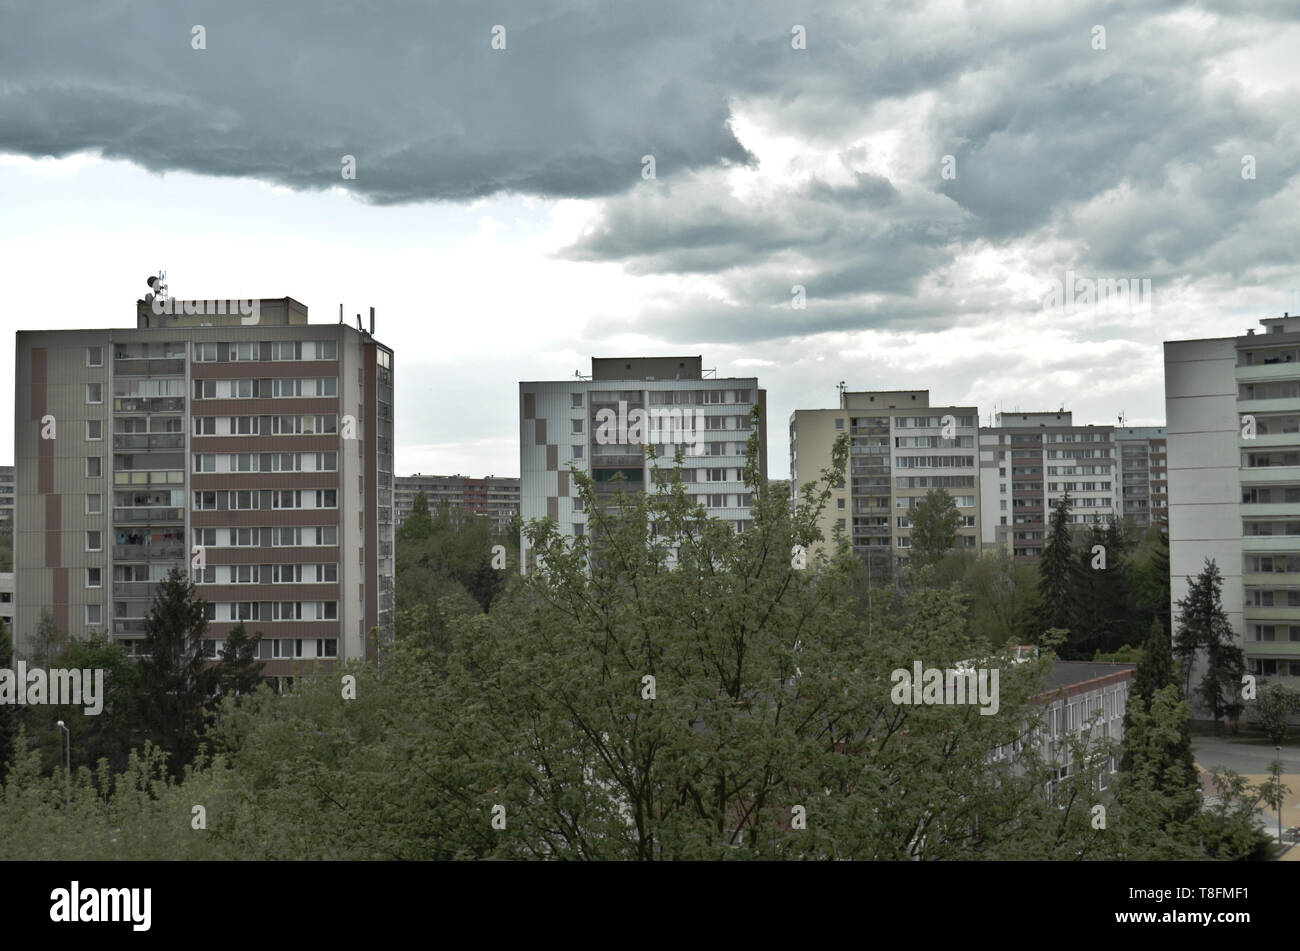 Depressing view of ugly communist building blocks (panelak) on a cloudy day at Prague on an average concrete buildings estate - Stock Image